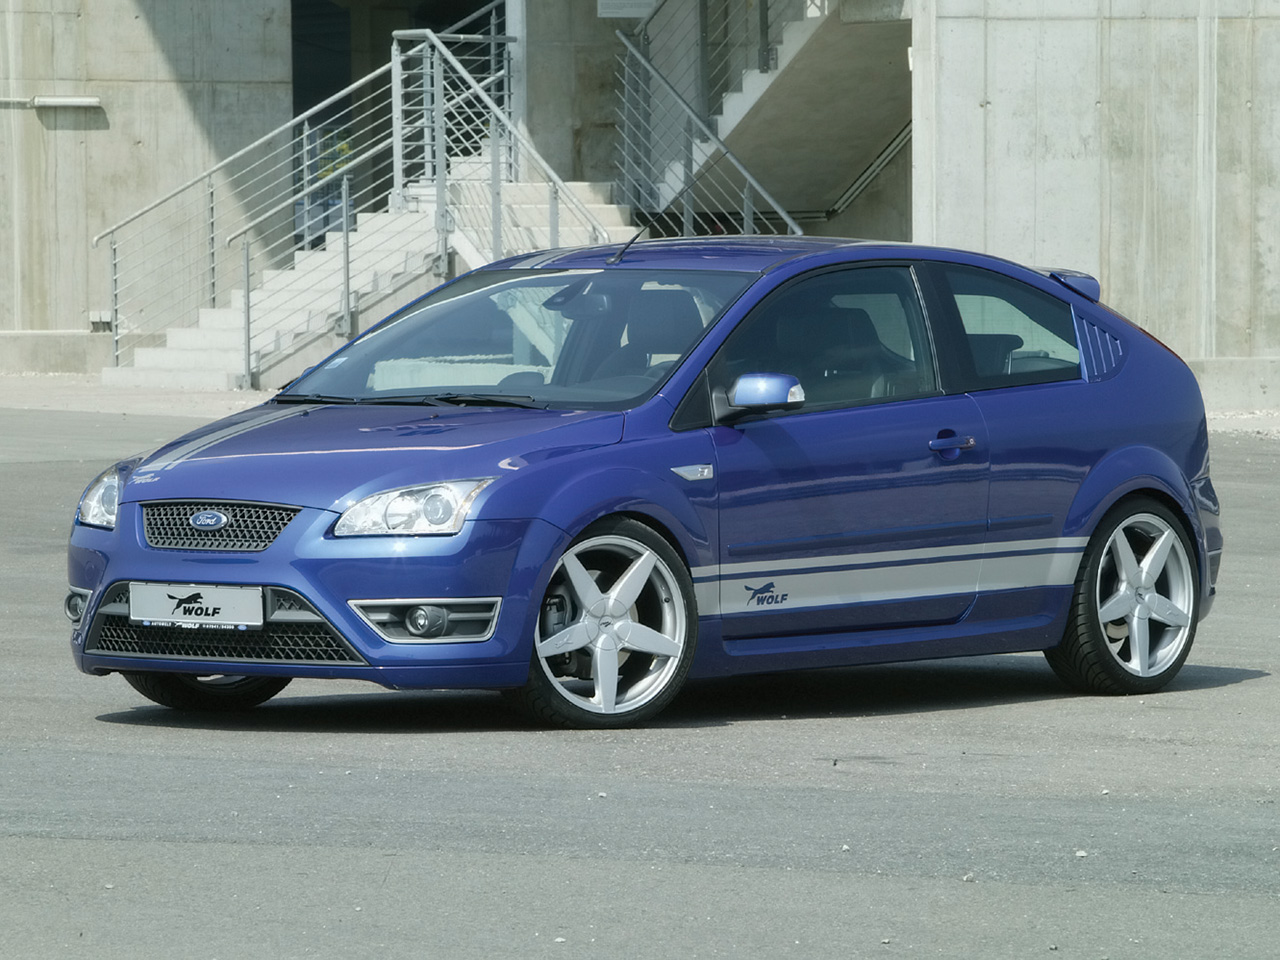 2006 ford focus image 5 for Ford focus 2006 interieur